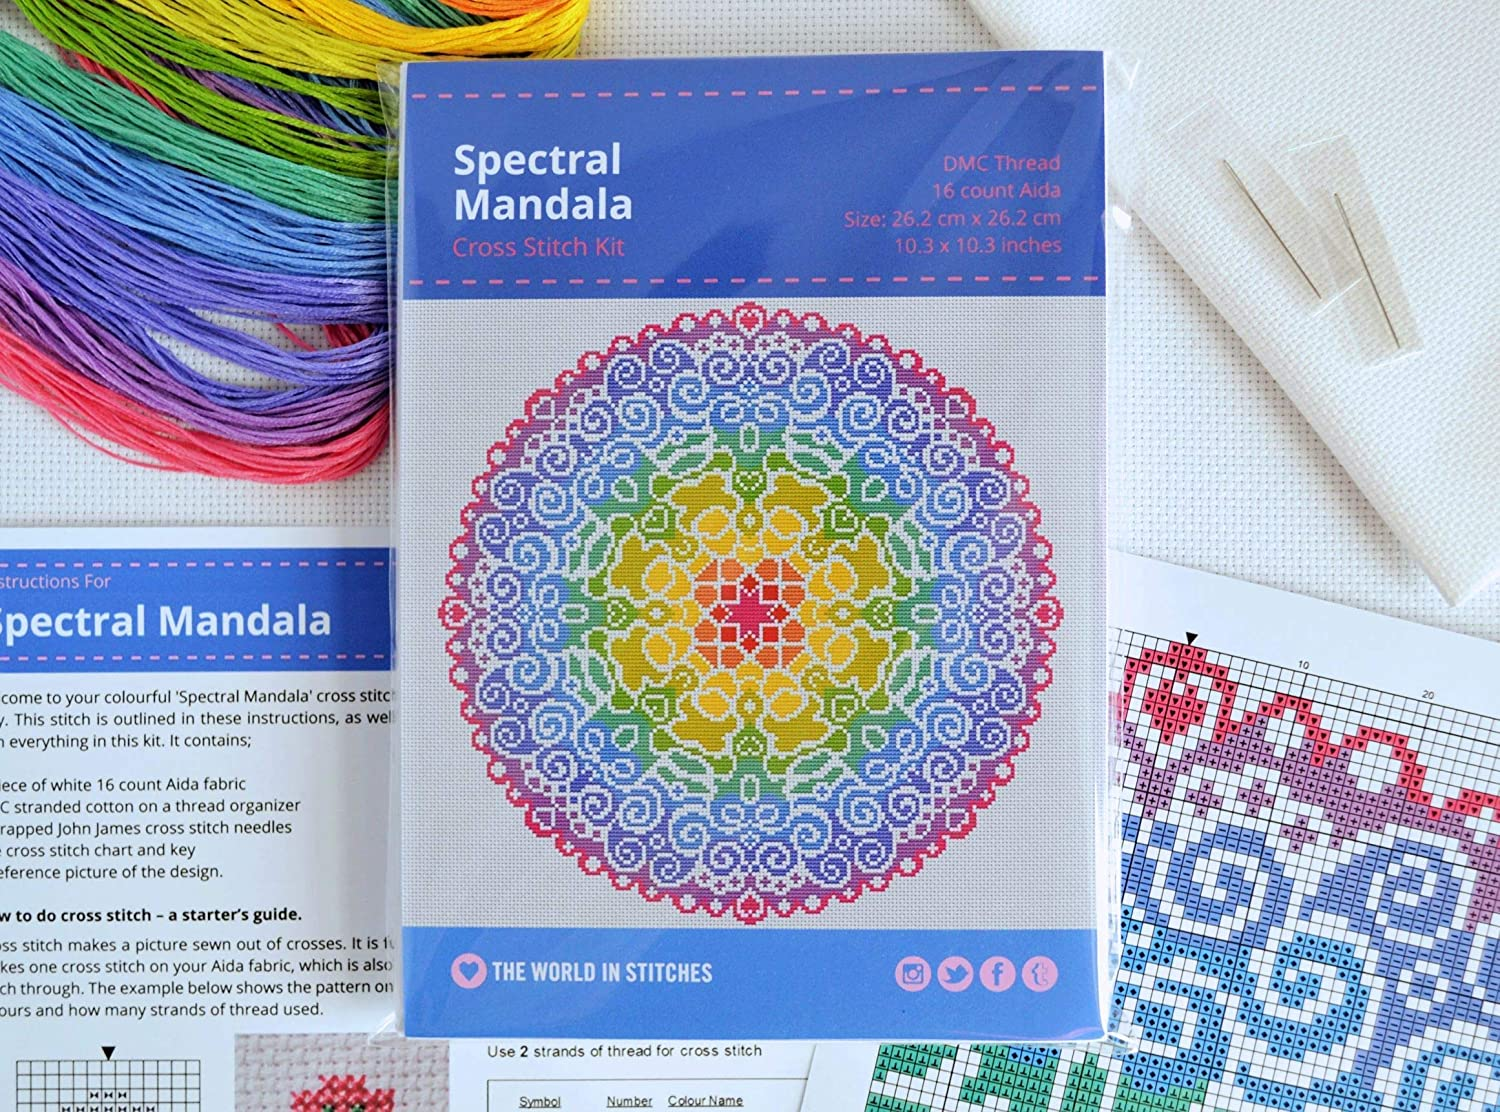 Spectral Mandala Cross Stitch Kit - Modern Design on 16 count Aida with DMC  Threads